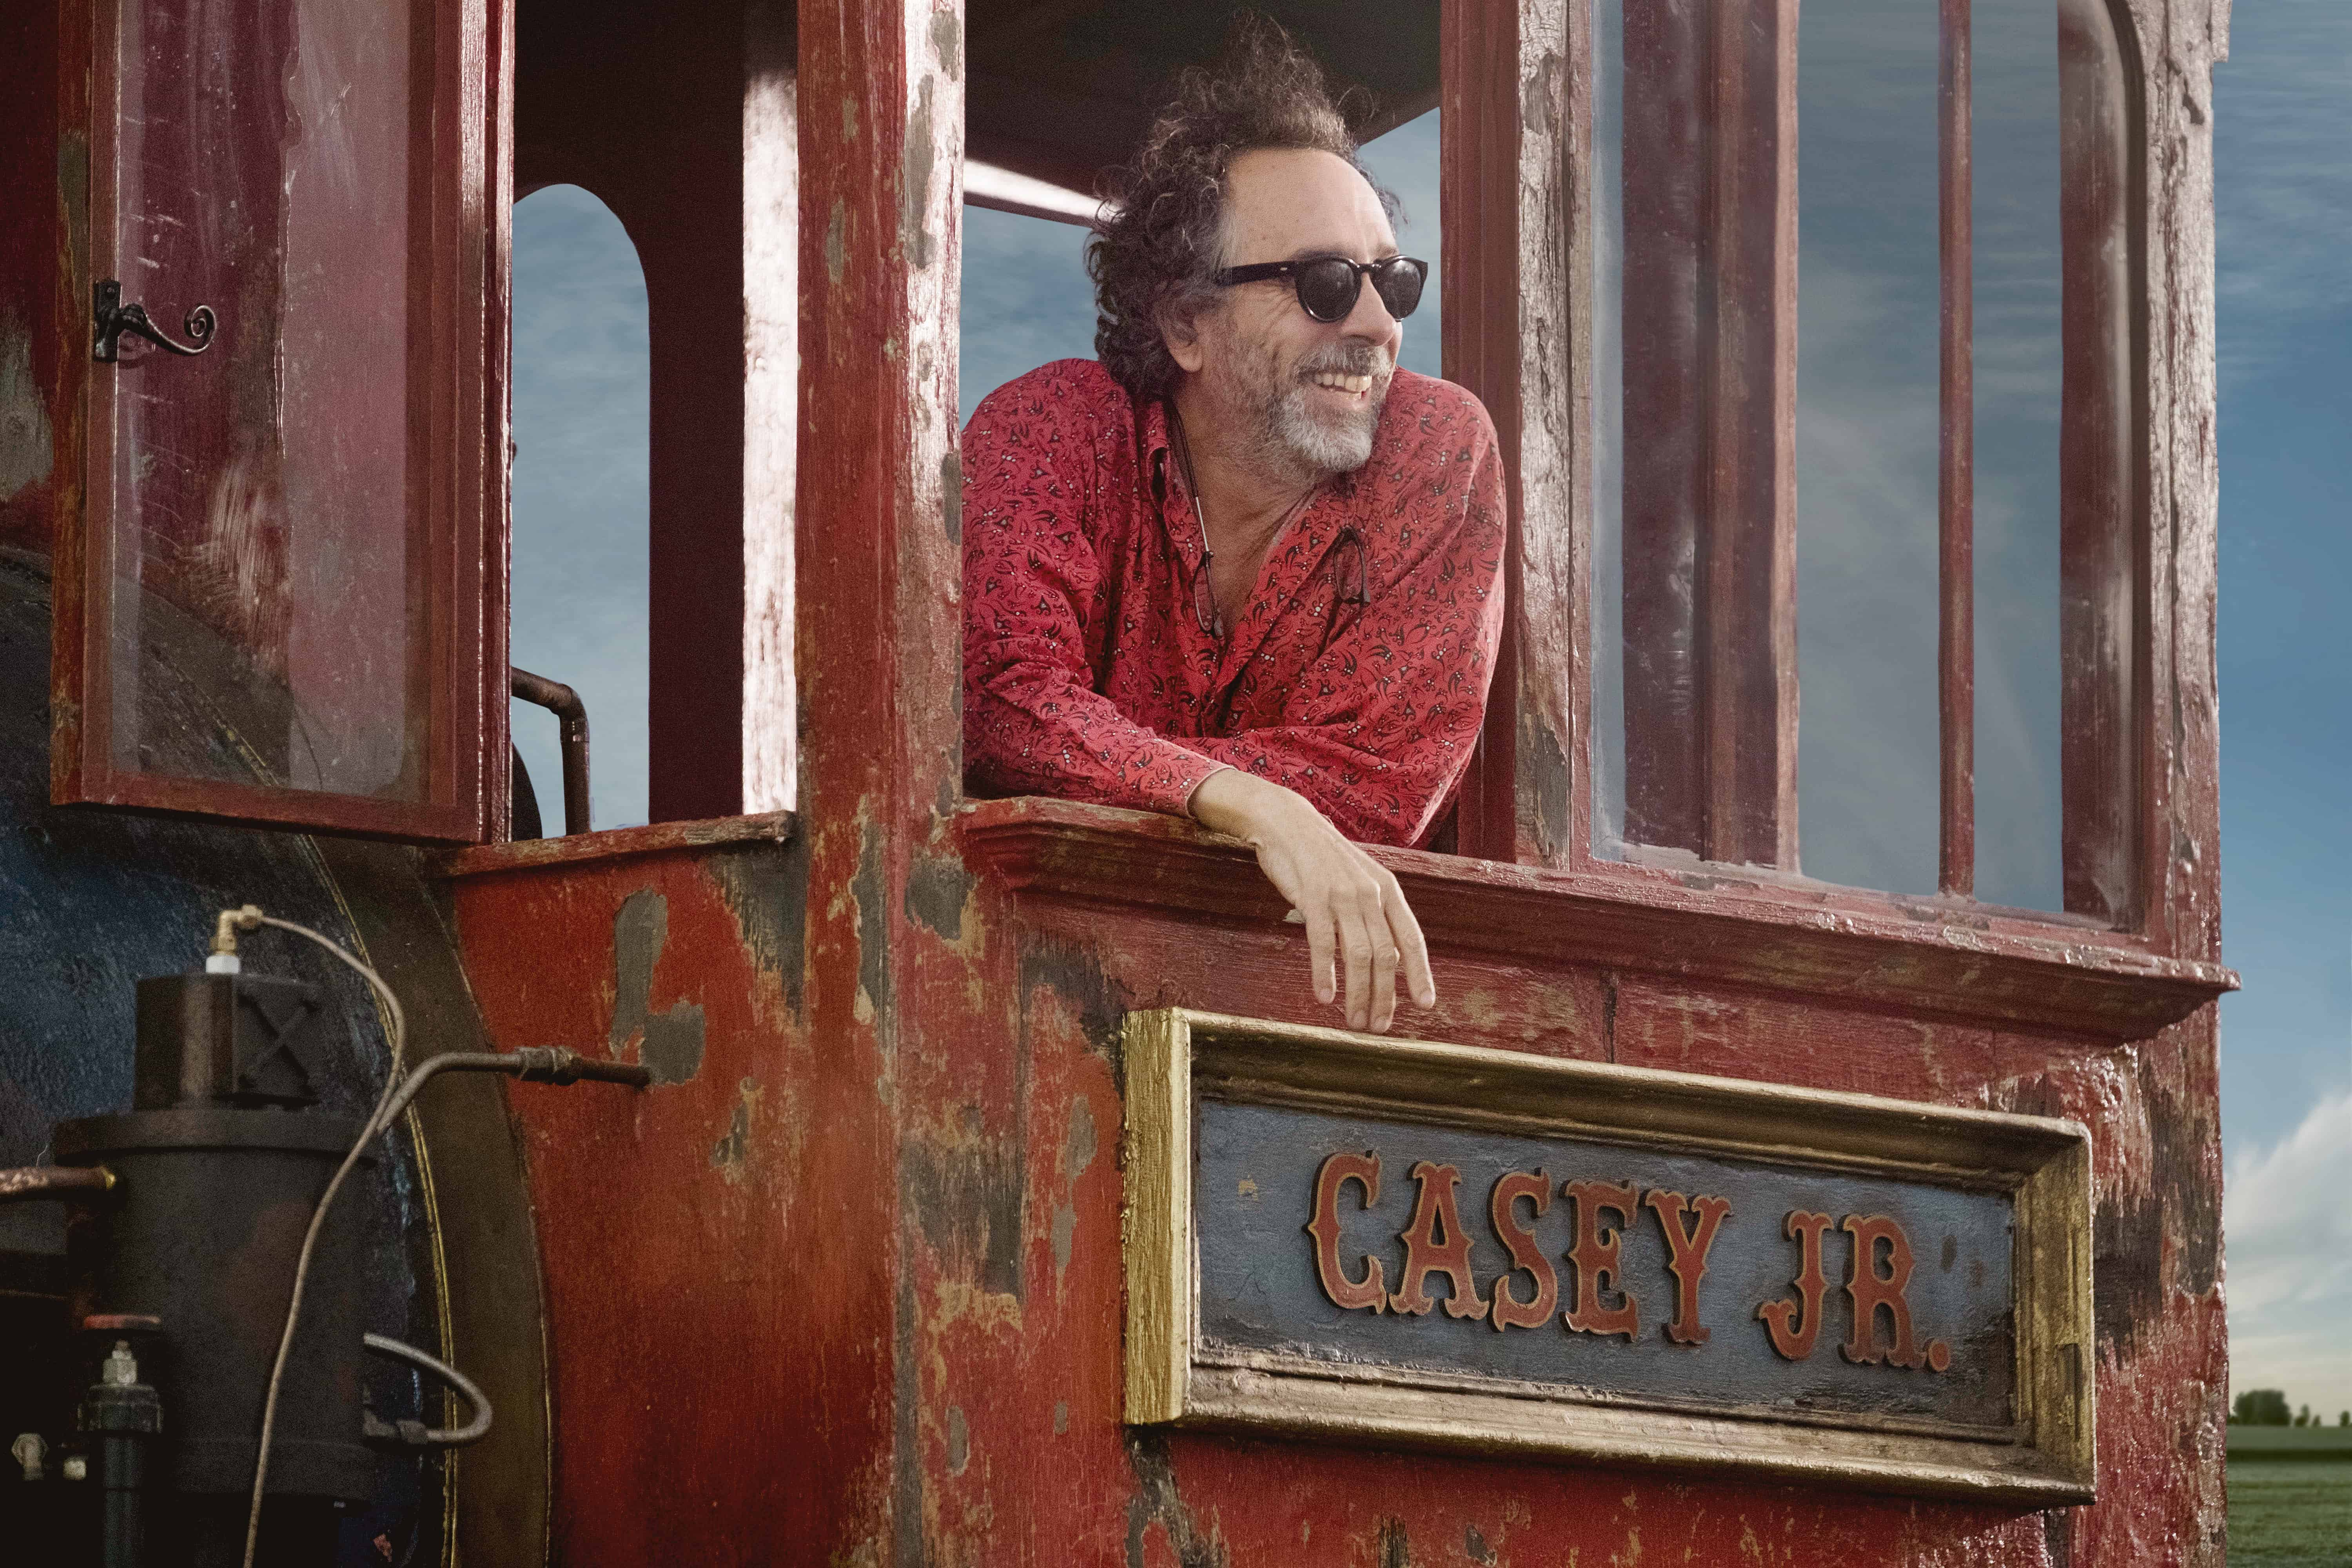 """GOTTA FLY – Visionary filmmaker Tim Burton helms the live-action reimagining of Disney's 1941 animated classic """"Dumbo."""" """"'Dumbo' was always one of my favorite Disney films,"""" said Burton. """"We're trying to give it the same heart, feeling and emotion that we all loved about the original."""" Starring Colin Farrell, Michael Keaton, Danny DeVito, Eva Green, Nico Parker and Finley Hobbins, """"Dumbo"""" is currently in production in England. © 2017 Disney Enterprises, Inc. All Rights Reserved.."""